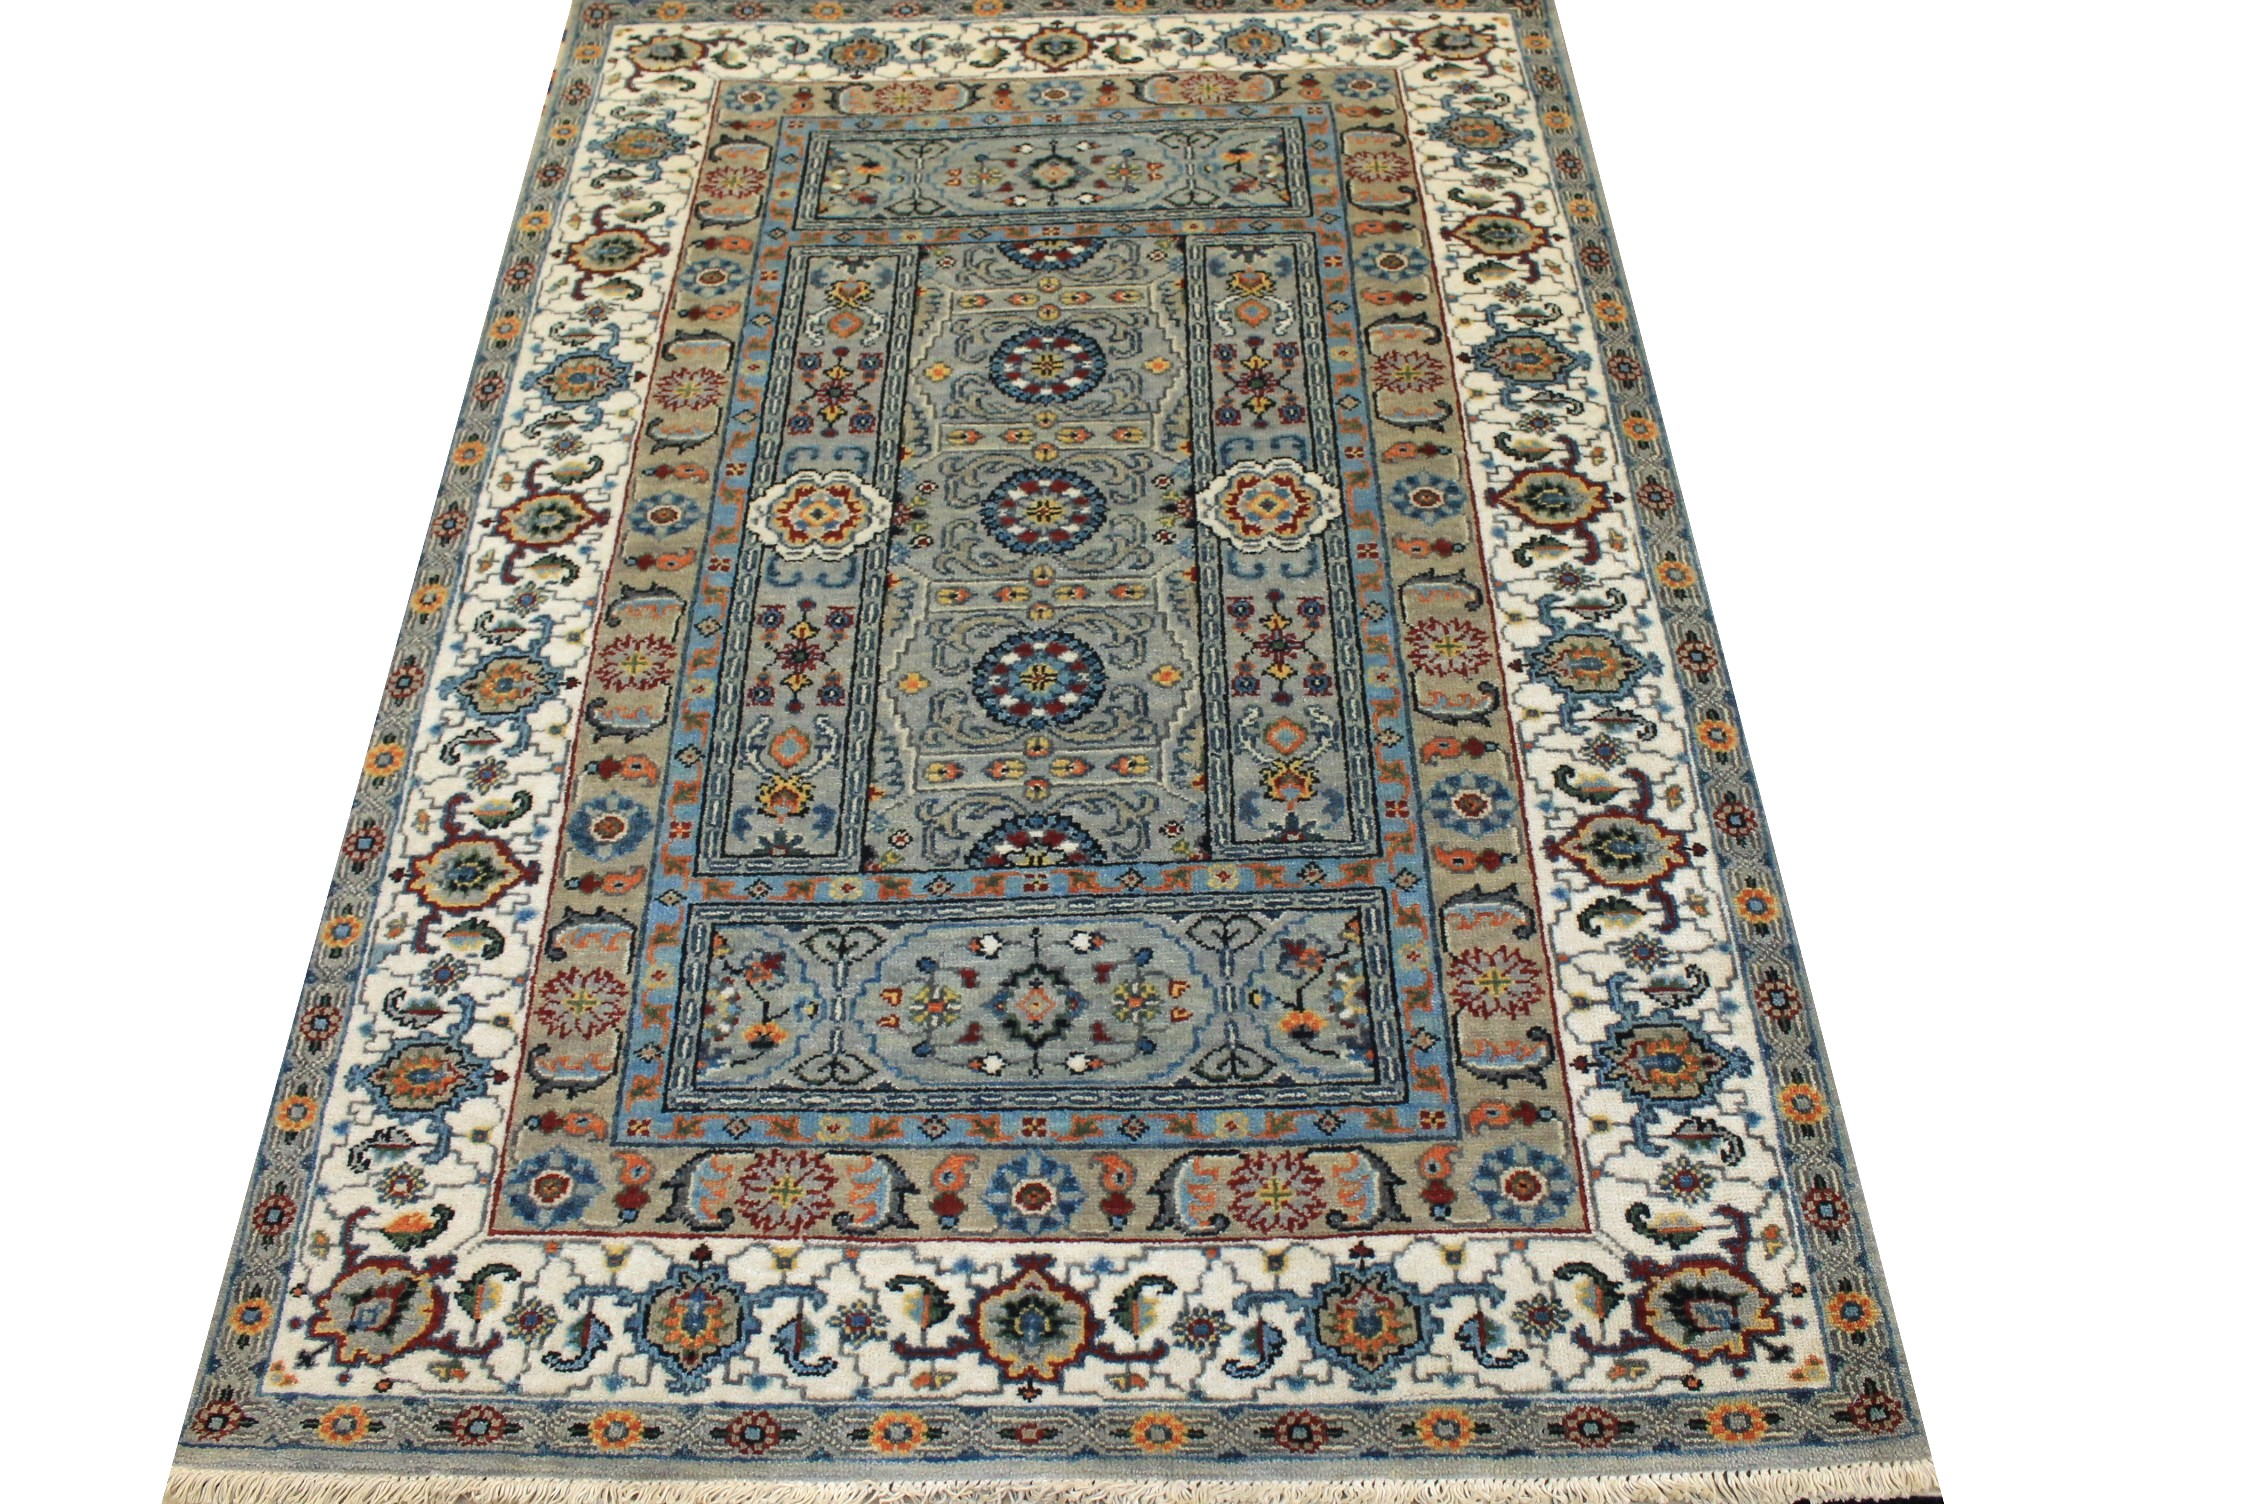 4x6 Traditional Hand Knotted Wool Area Rug - MR024977